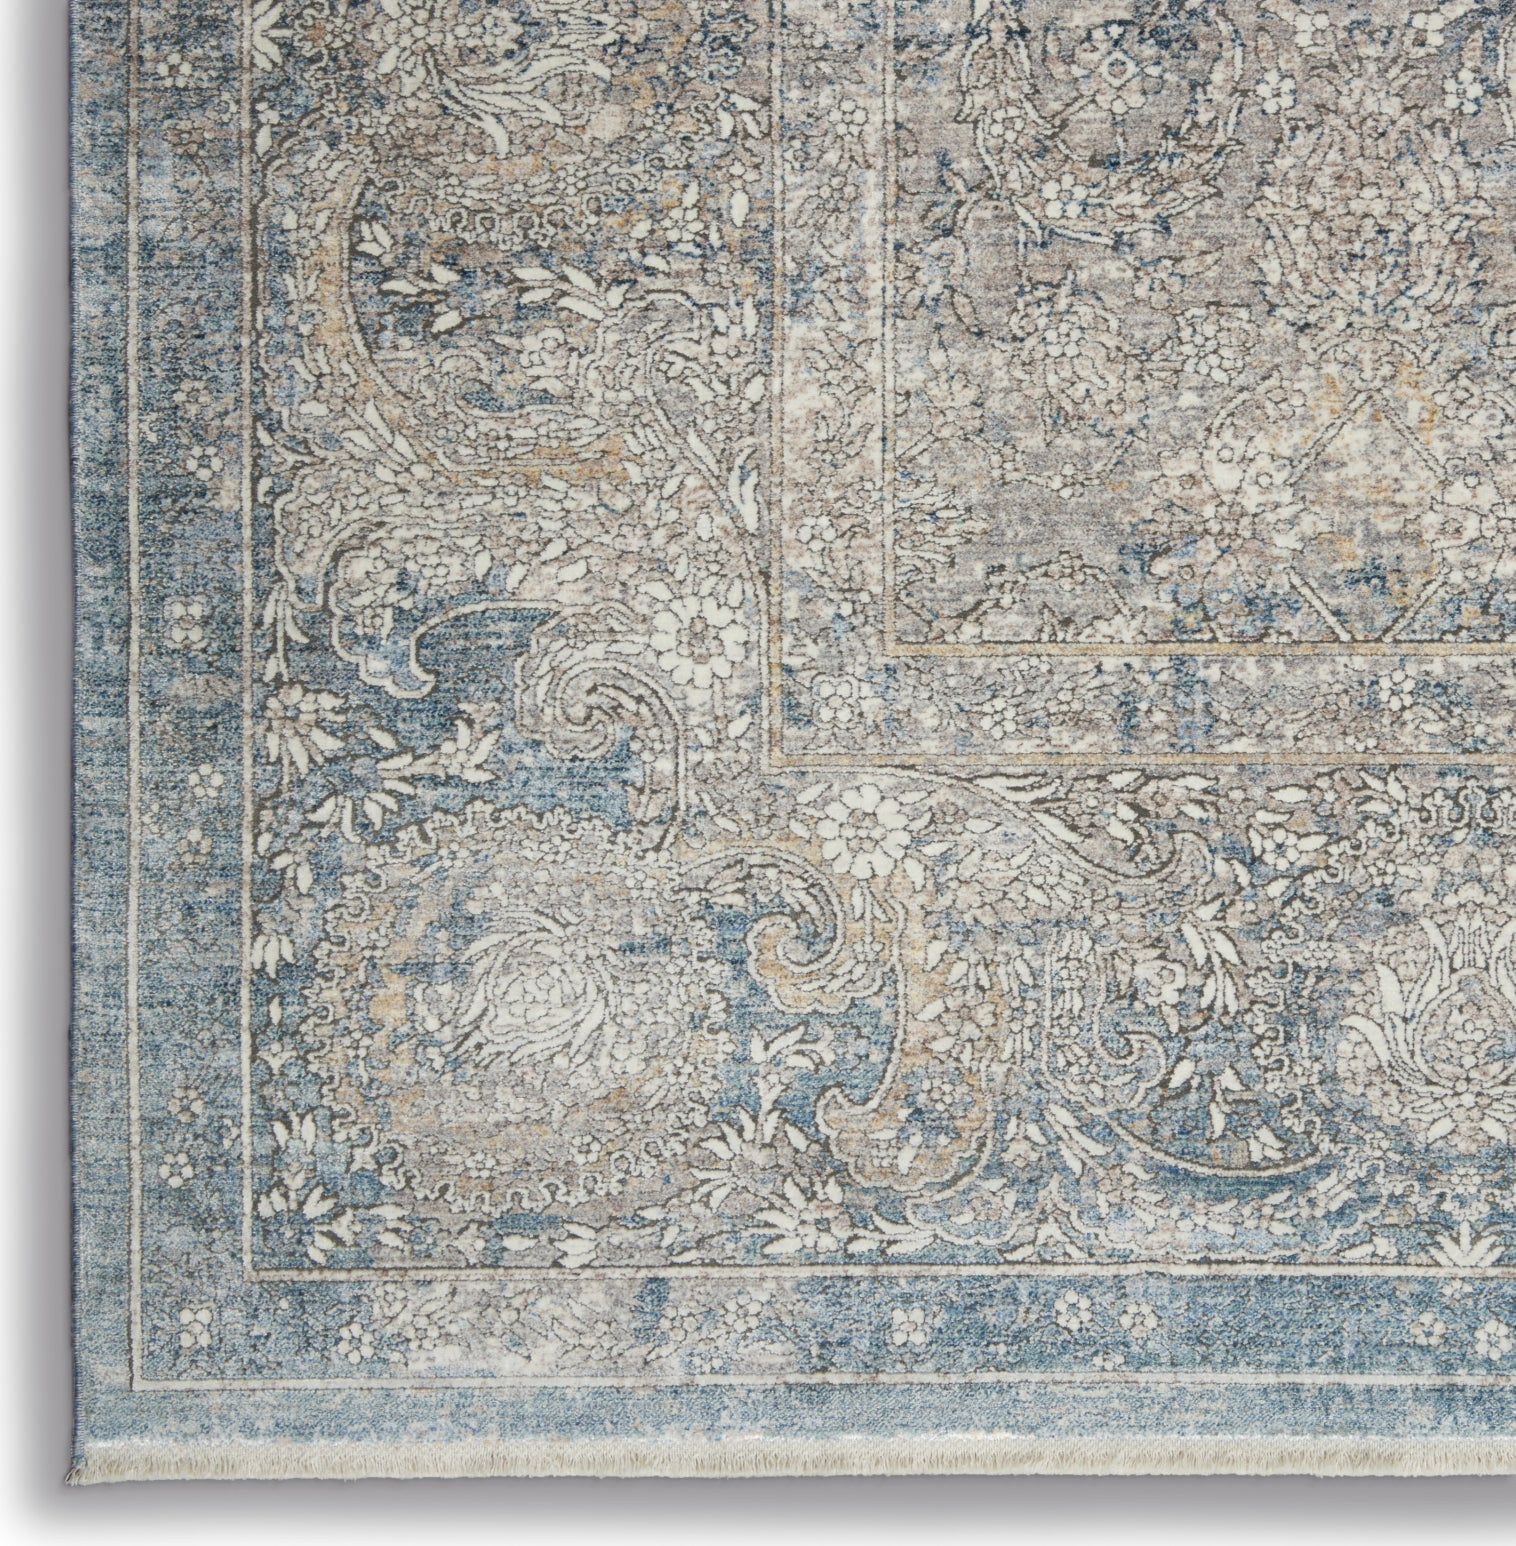 Starry Nights STN01 Cream Blue Area Rug by Nourison Corner Image